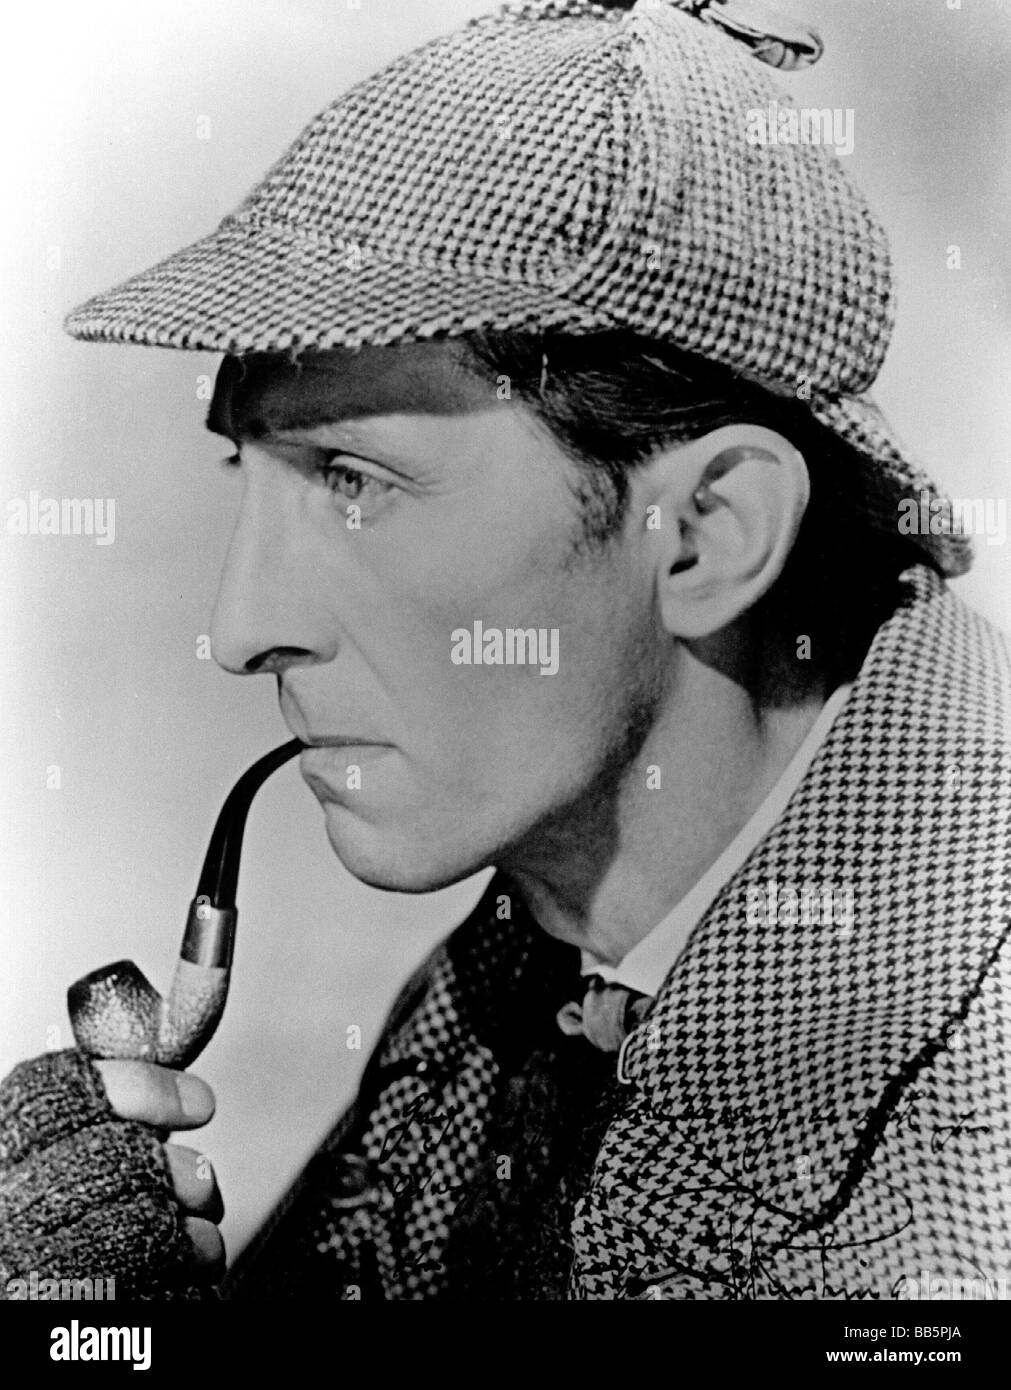 Sherlock Holmes, literary character by Sir Arthur Conan Doyle, Peter Cushing as the detective in 'The Hound - Stock Image